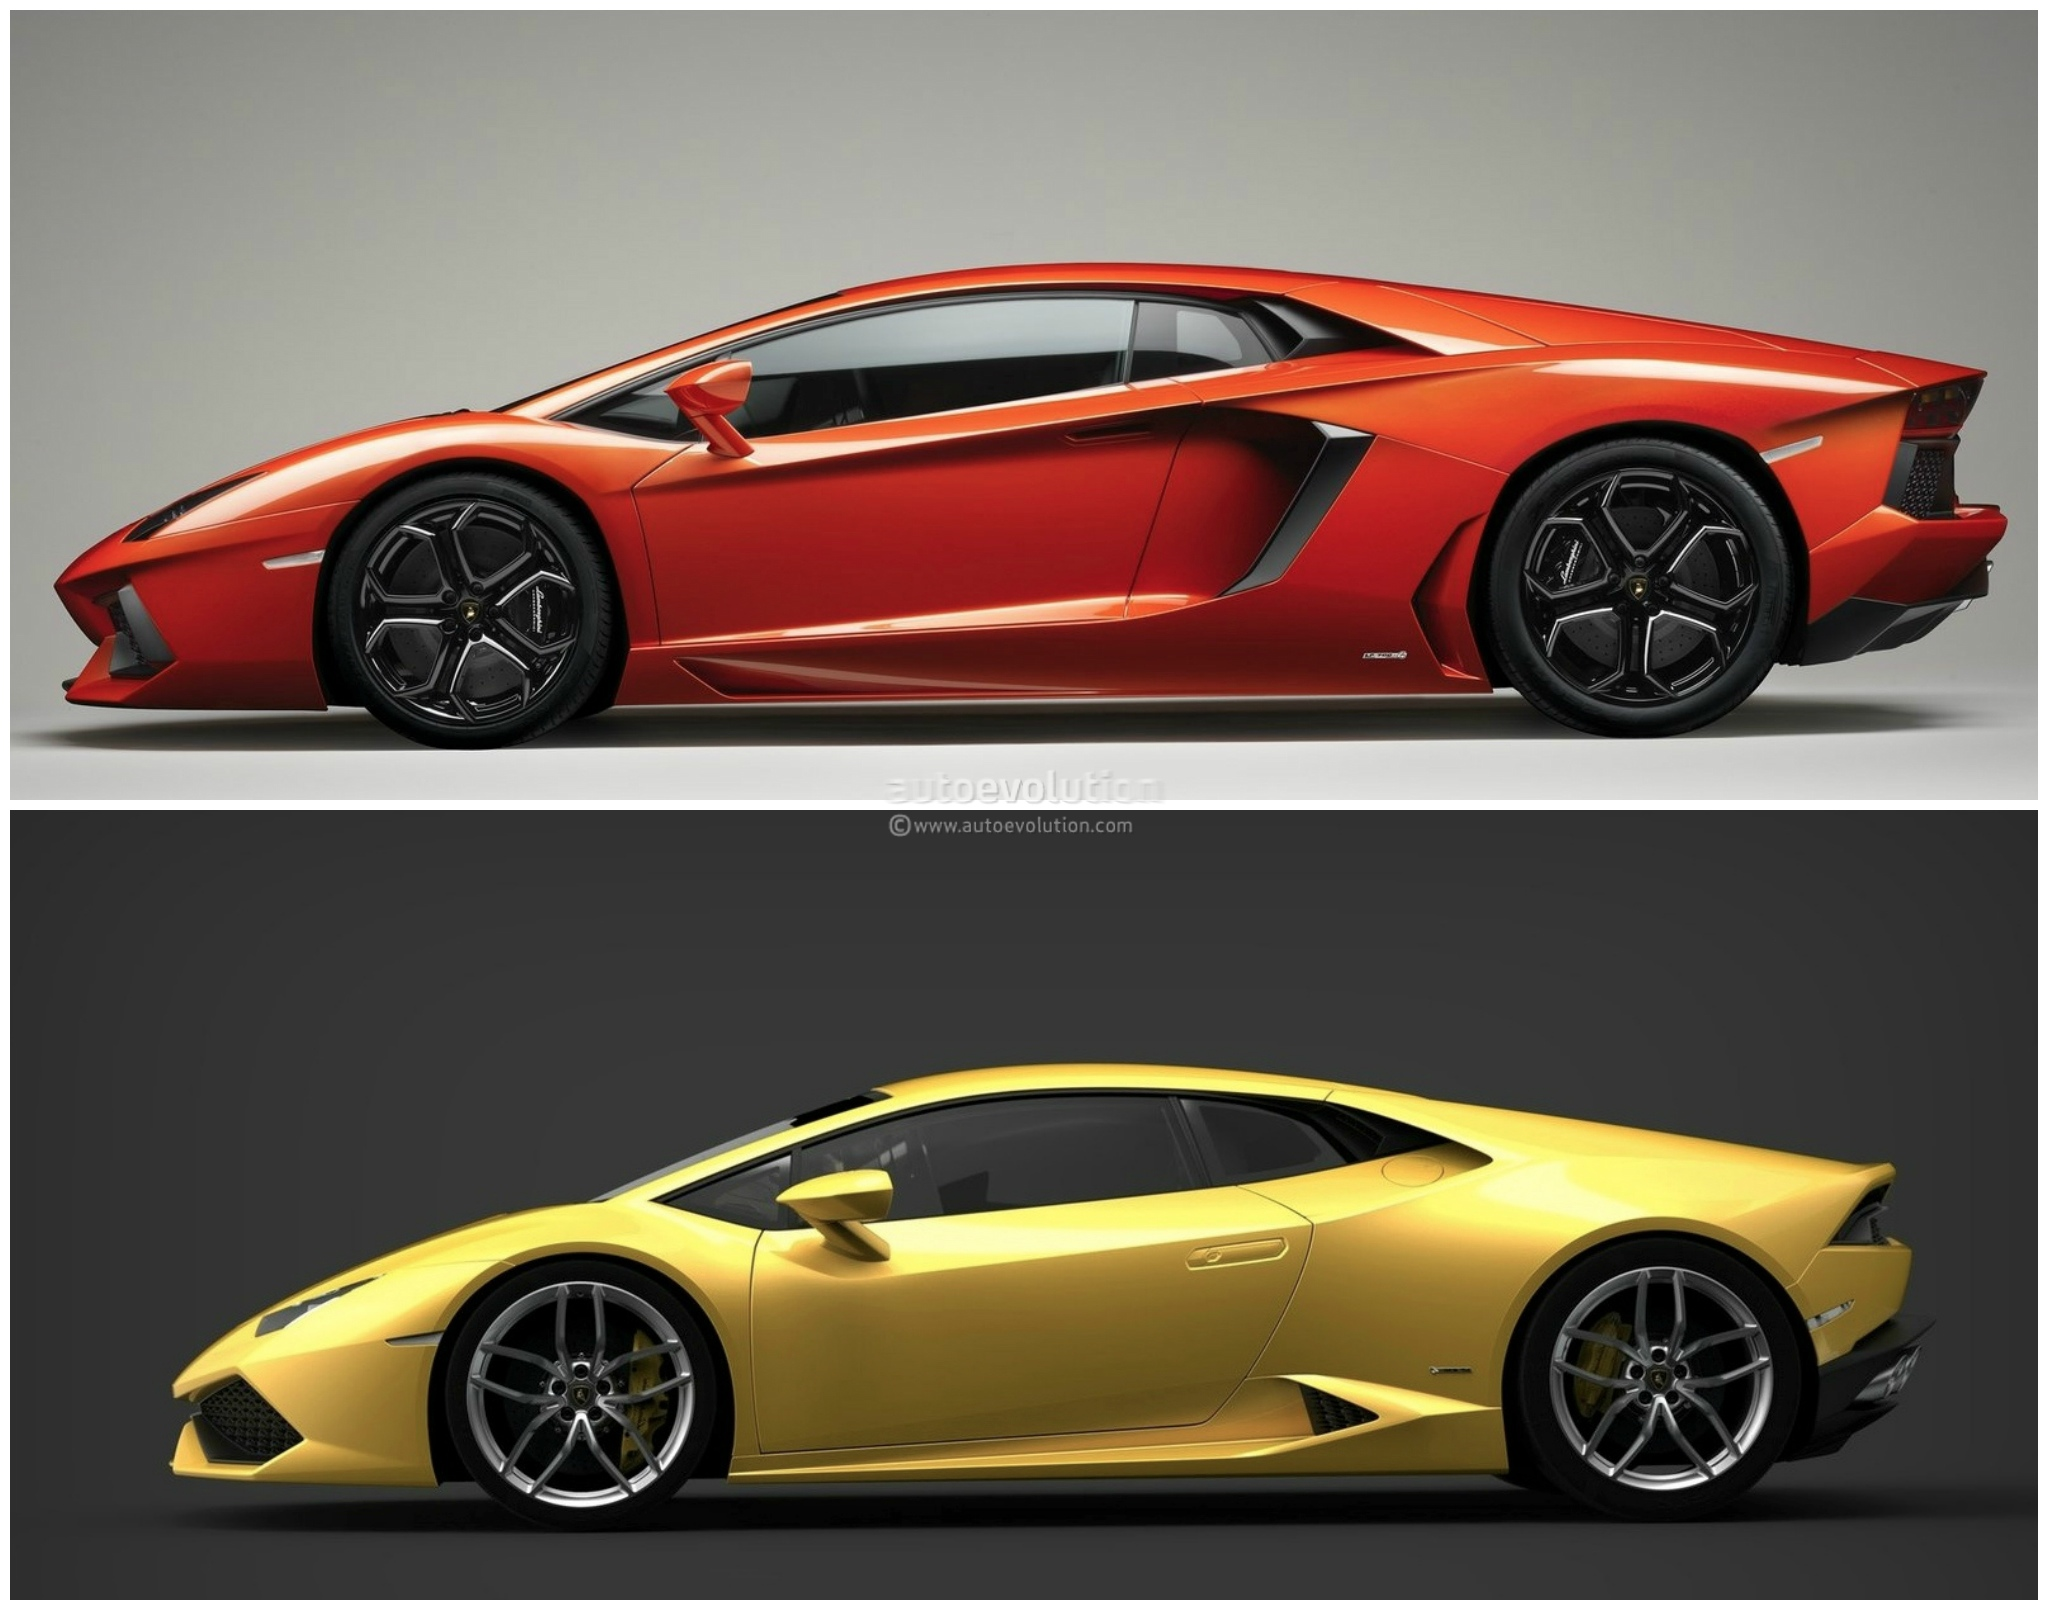 ... Lamborghini Huracan Vs Lamborghini Aventador Comparison: Side View ...